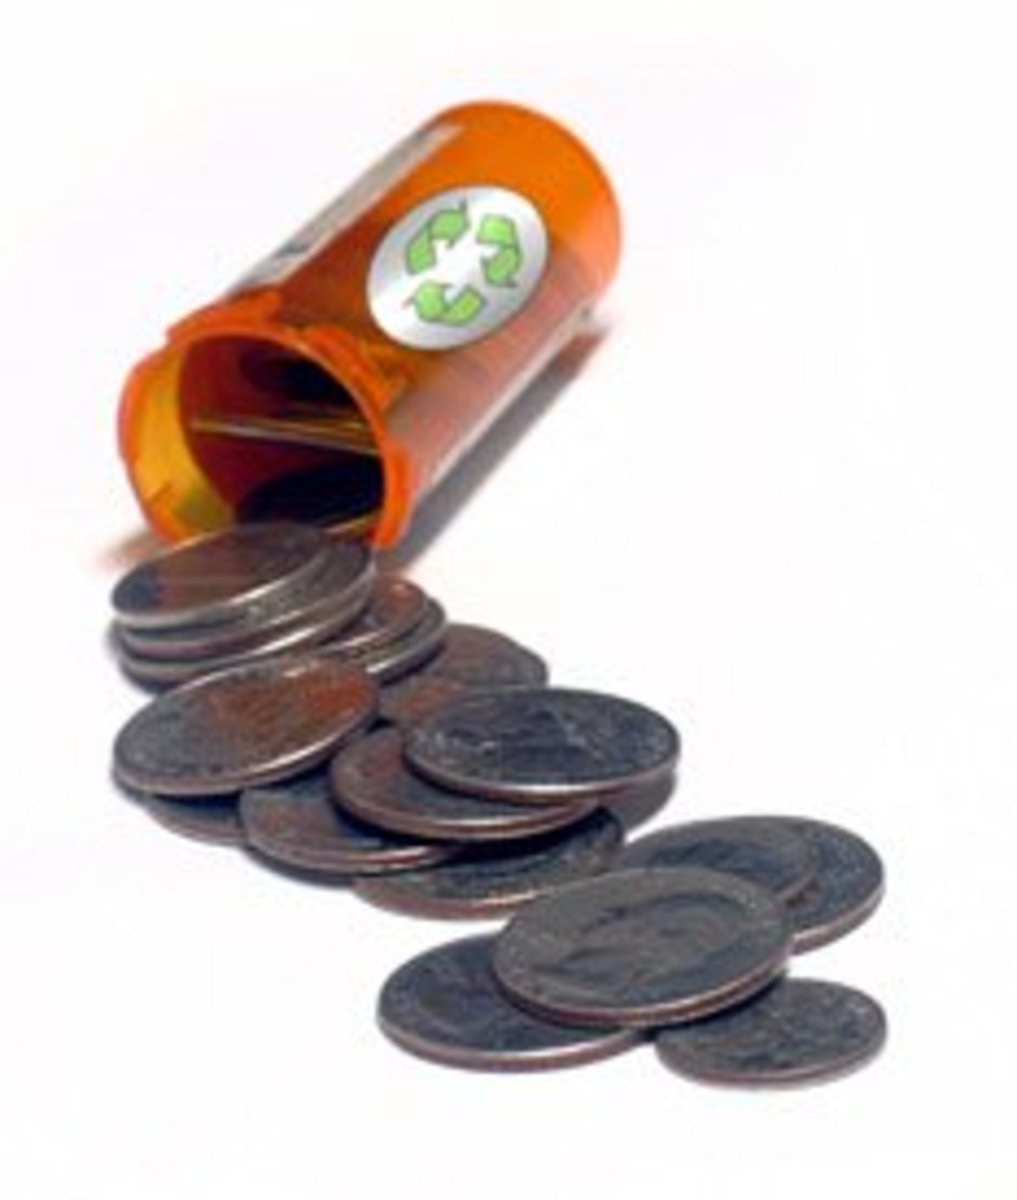 The tall pill bottles can hold up to $10 worth of quarters.